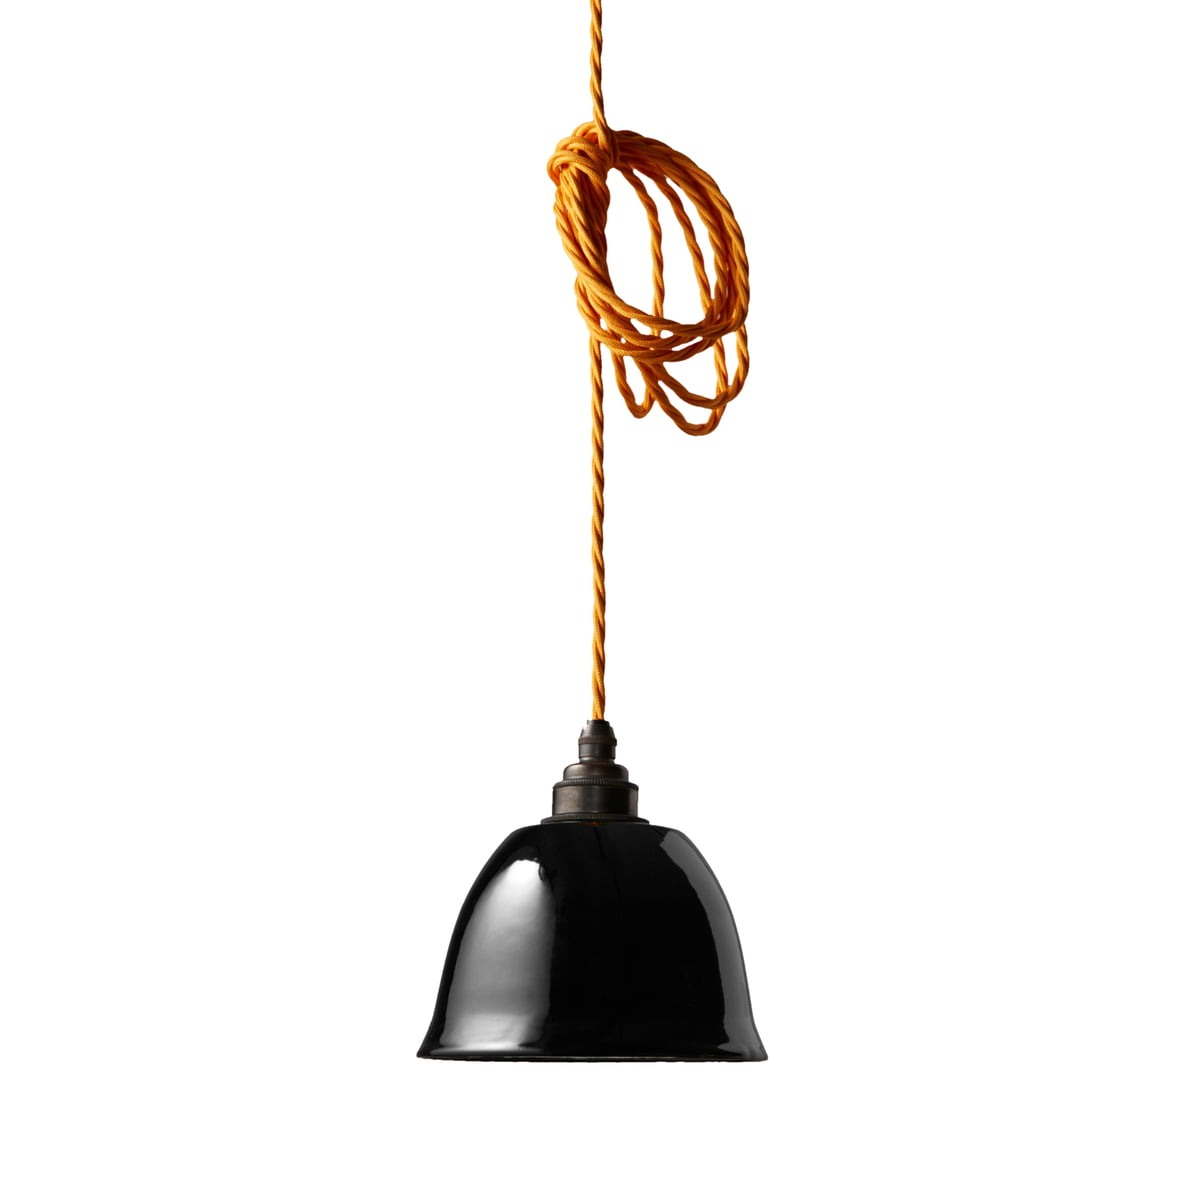 The Nook London   Miniature Bell Lamp Shade In Black With Yellow Cable